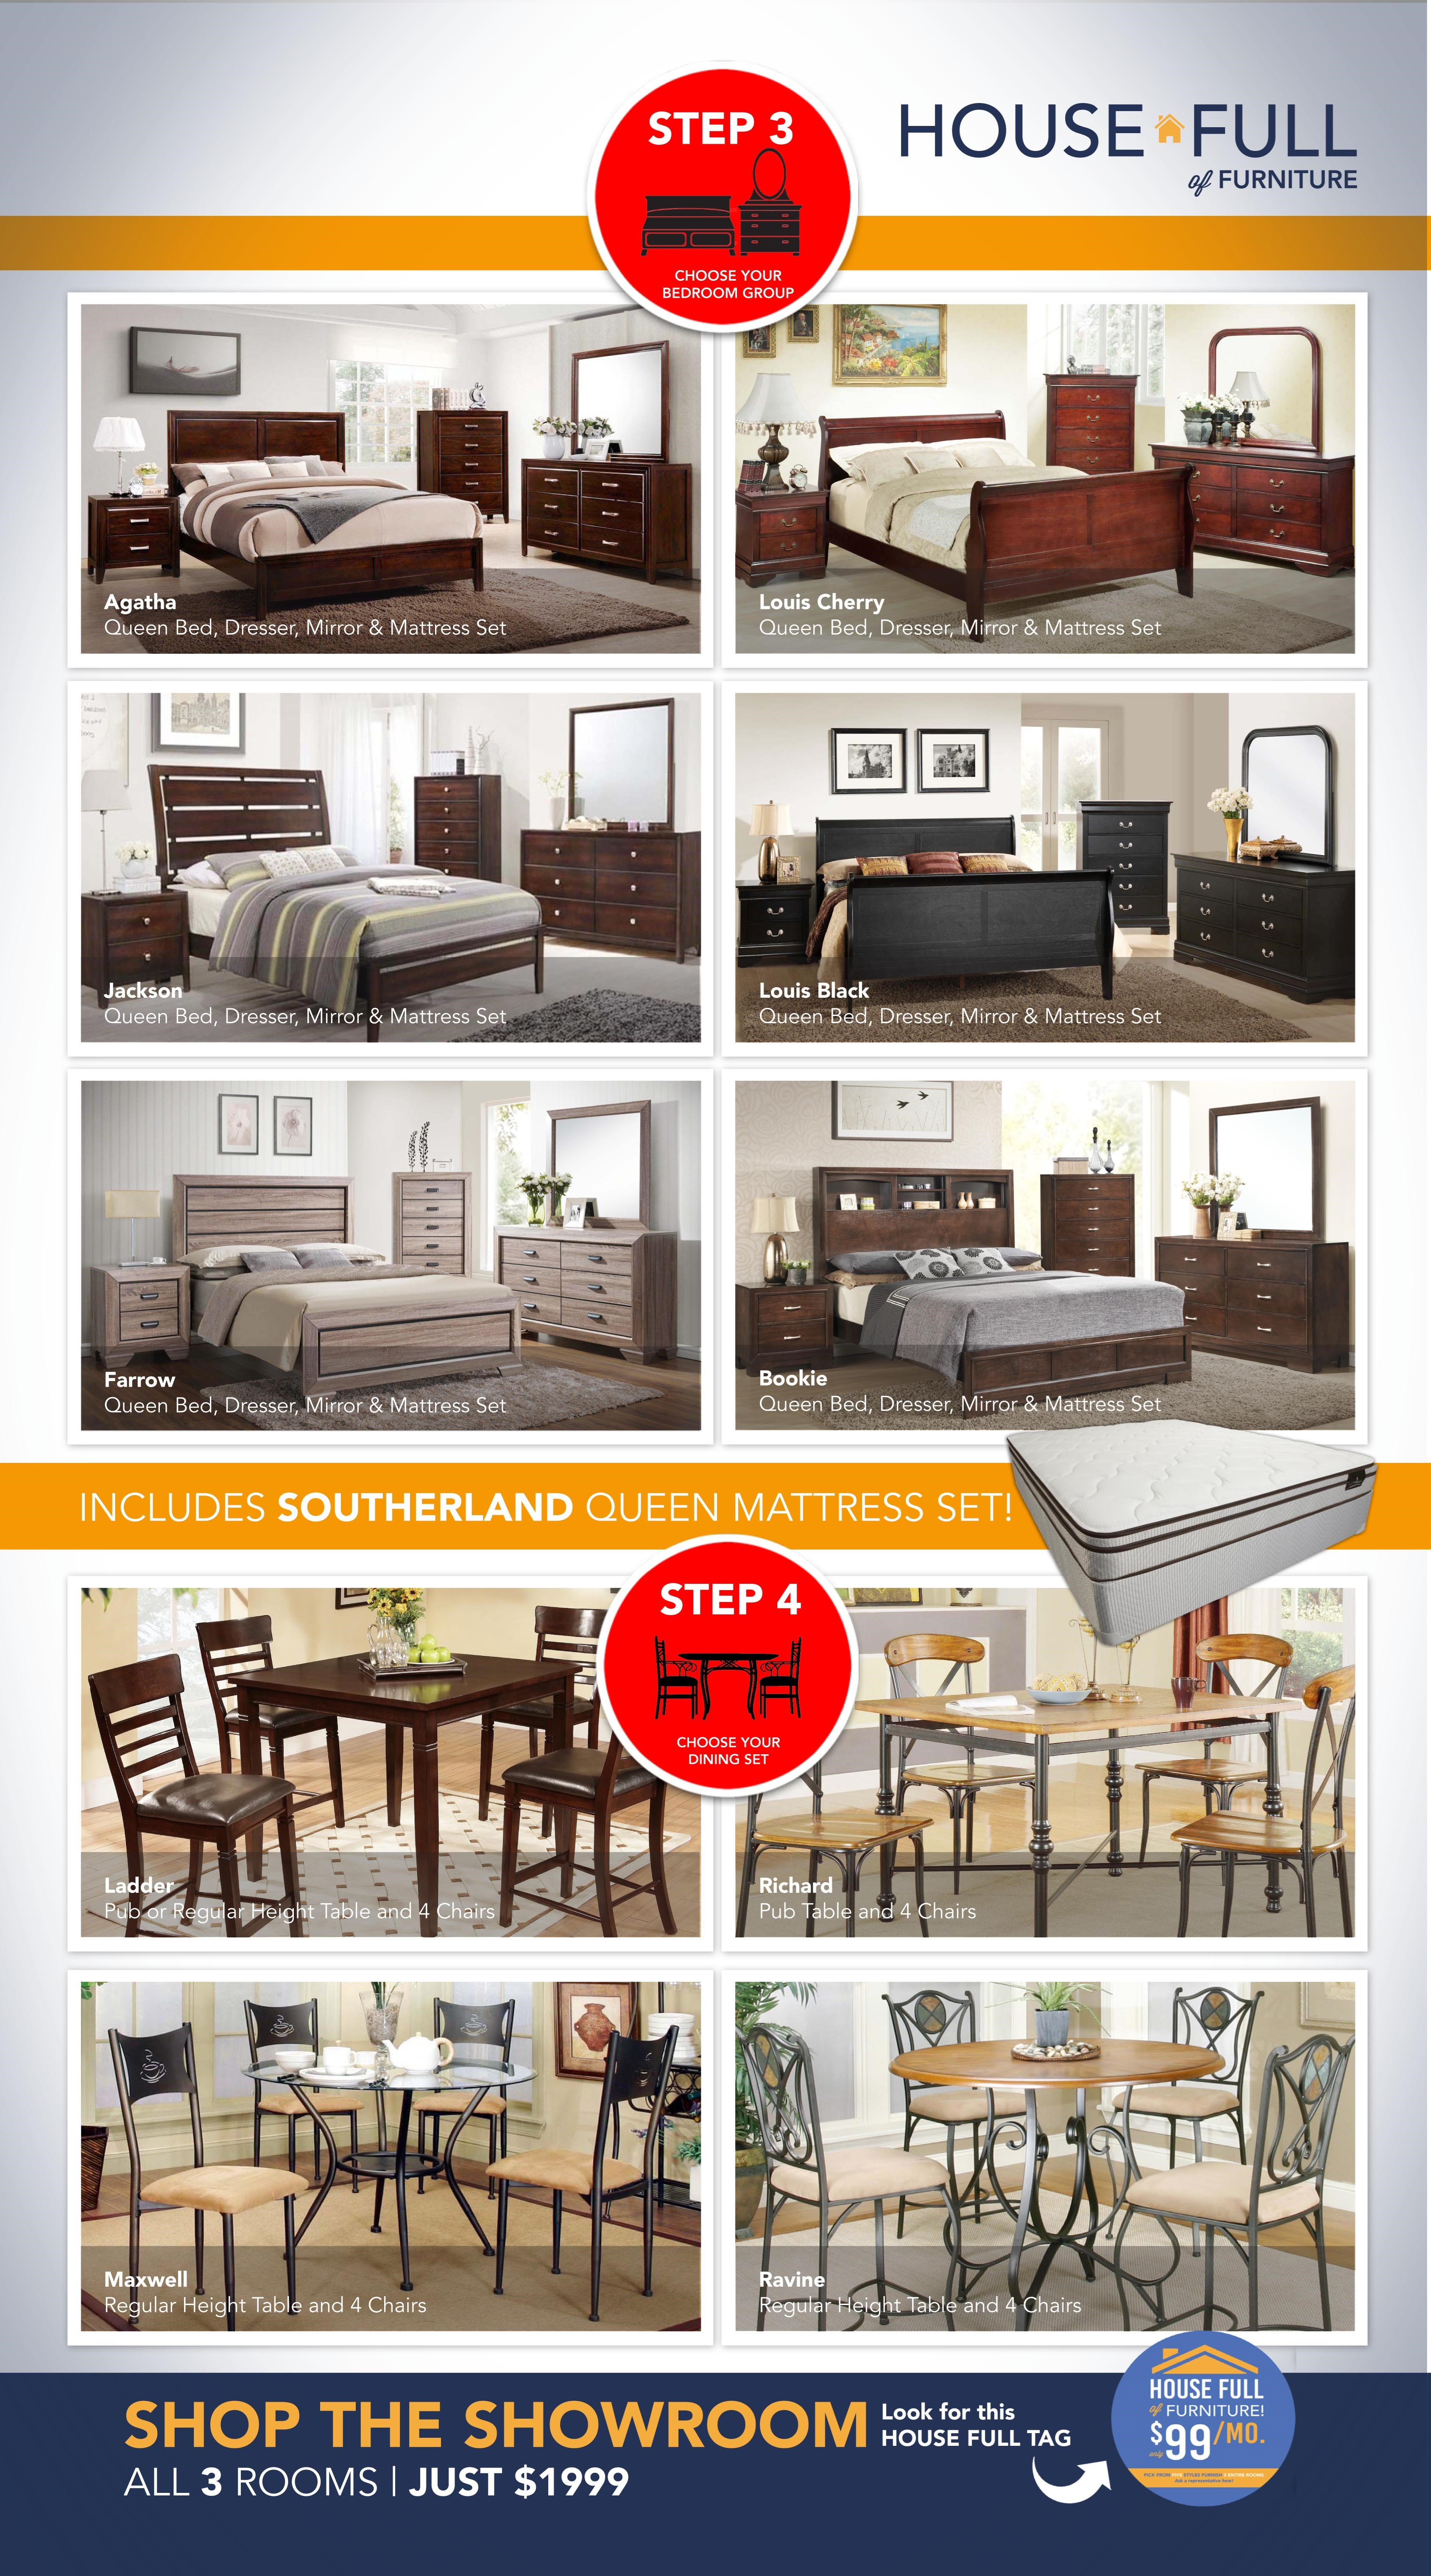 High Quality House Full Furniture Package HouseFull Of Furniture Packages